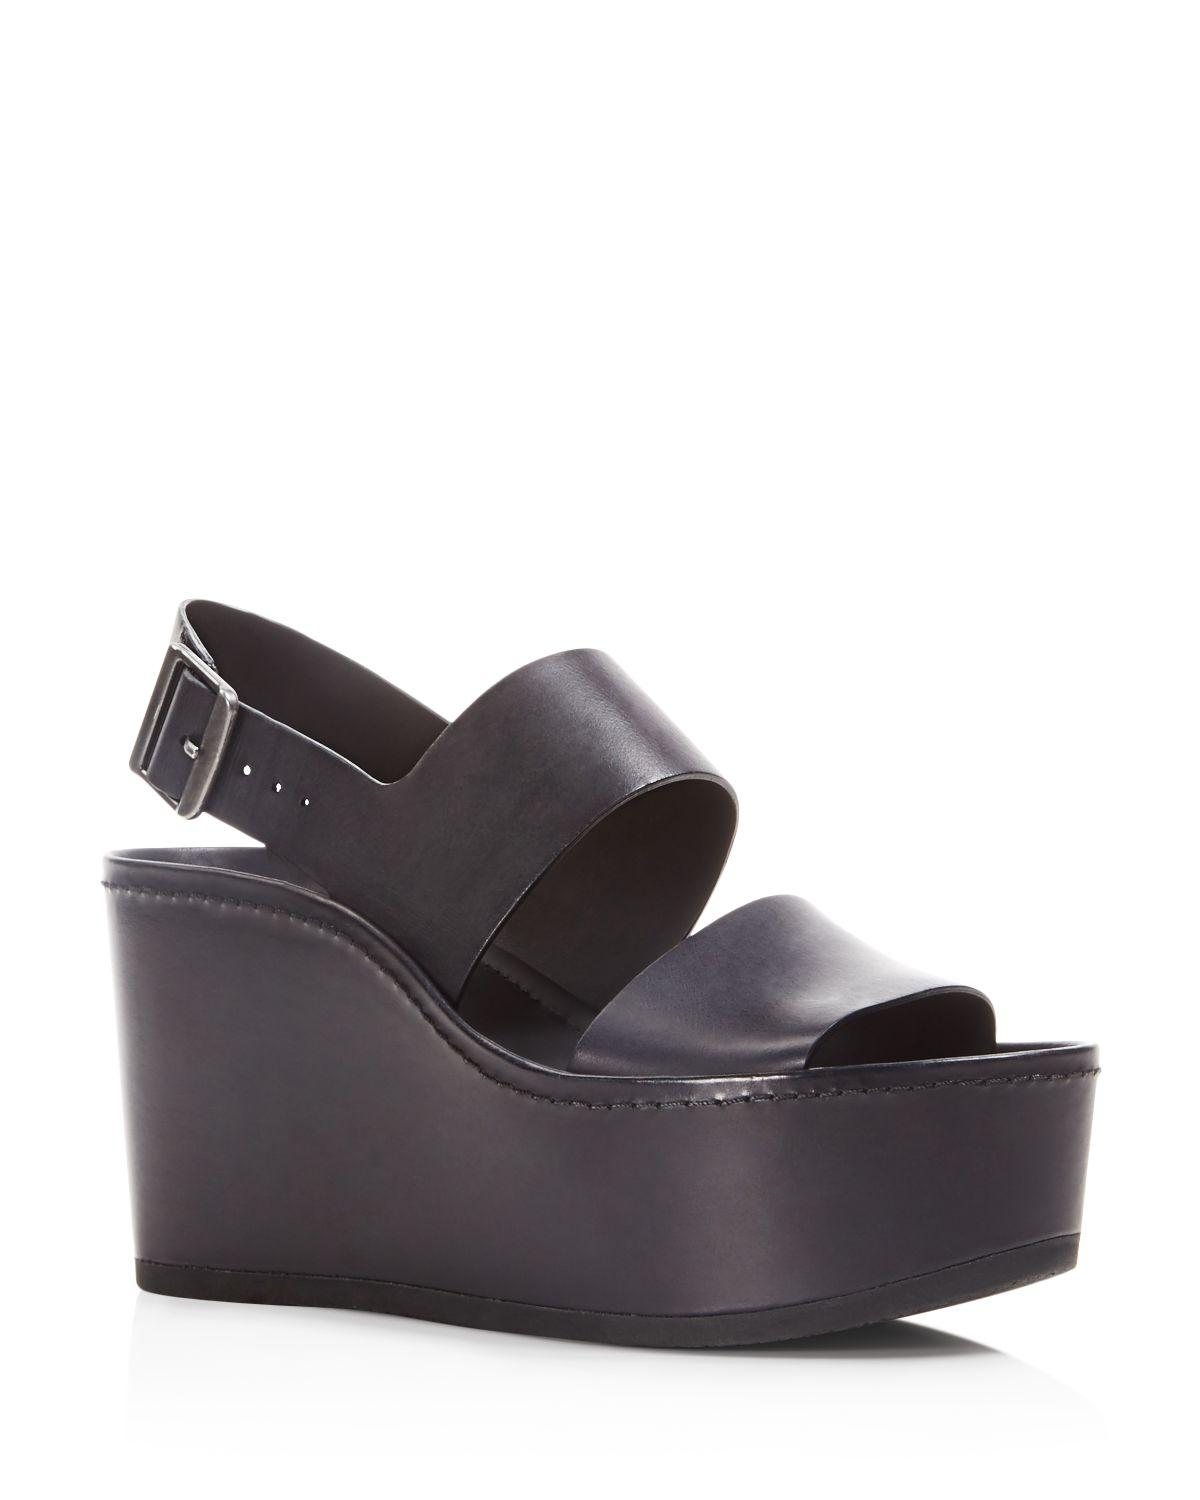 919160439fd Lyst - Vince Idalia Platform Wedge Sandals in Black